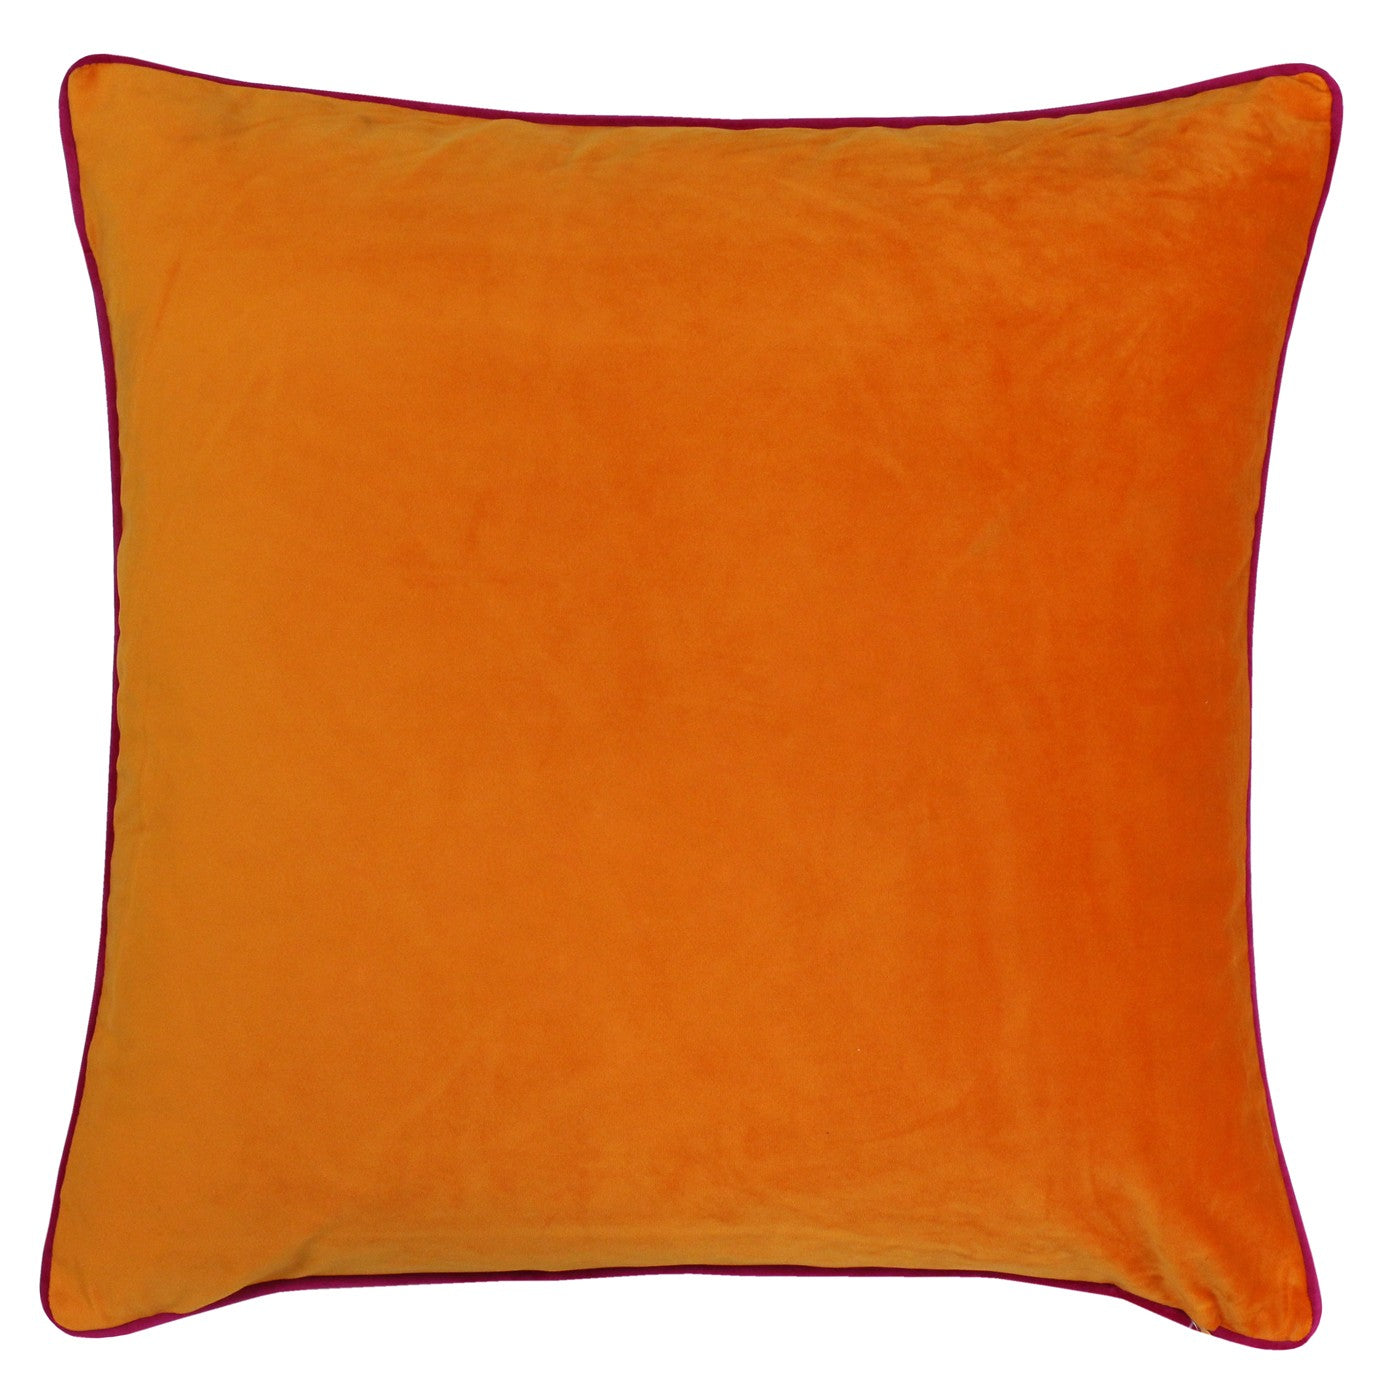 Large bright orange velvet cushion